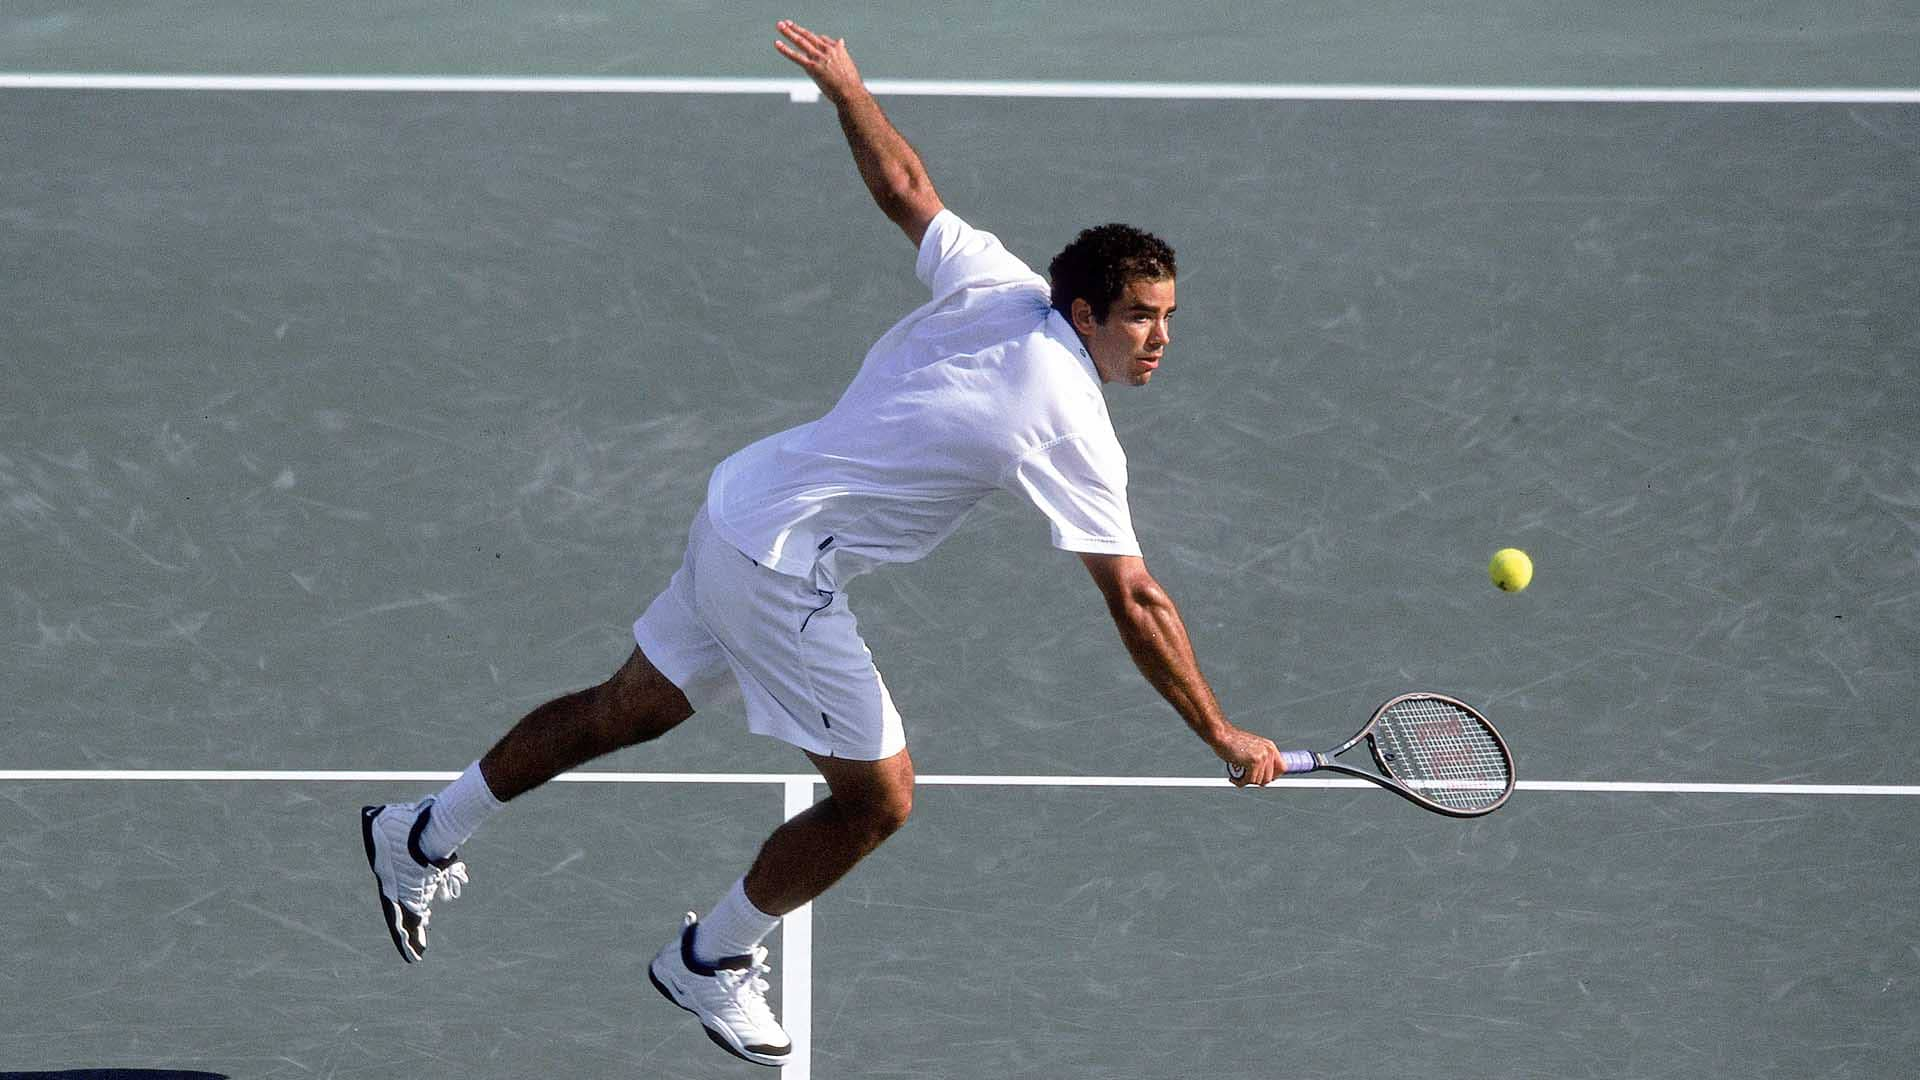 Pete Sampras claims his final ATP Masters 1000 title in Miami in 2000.